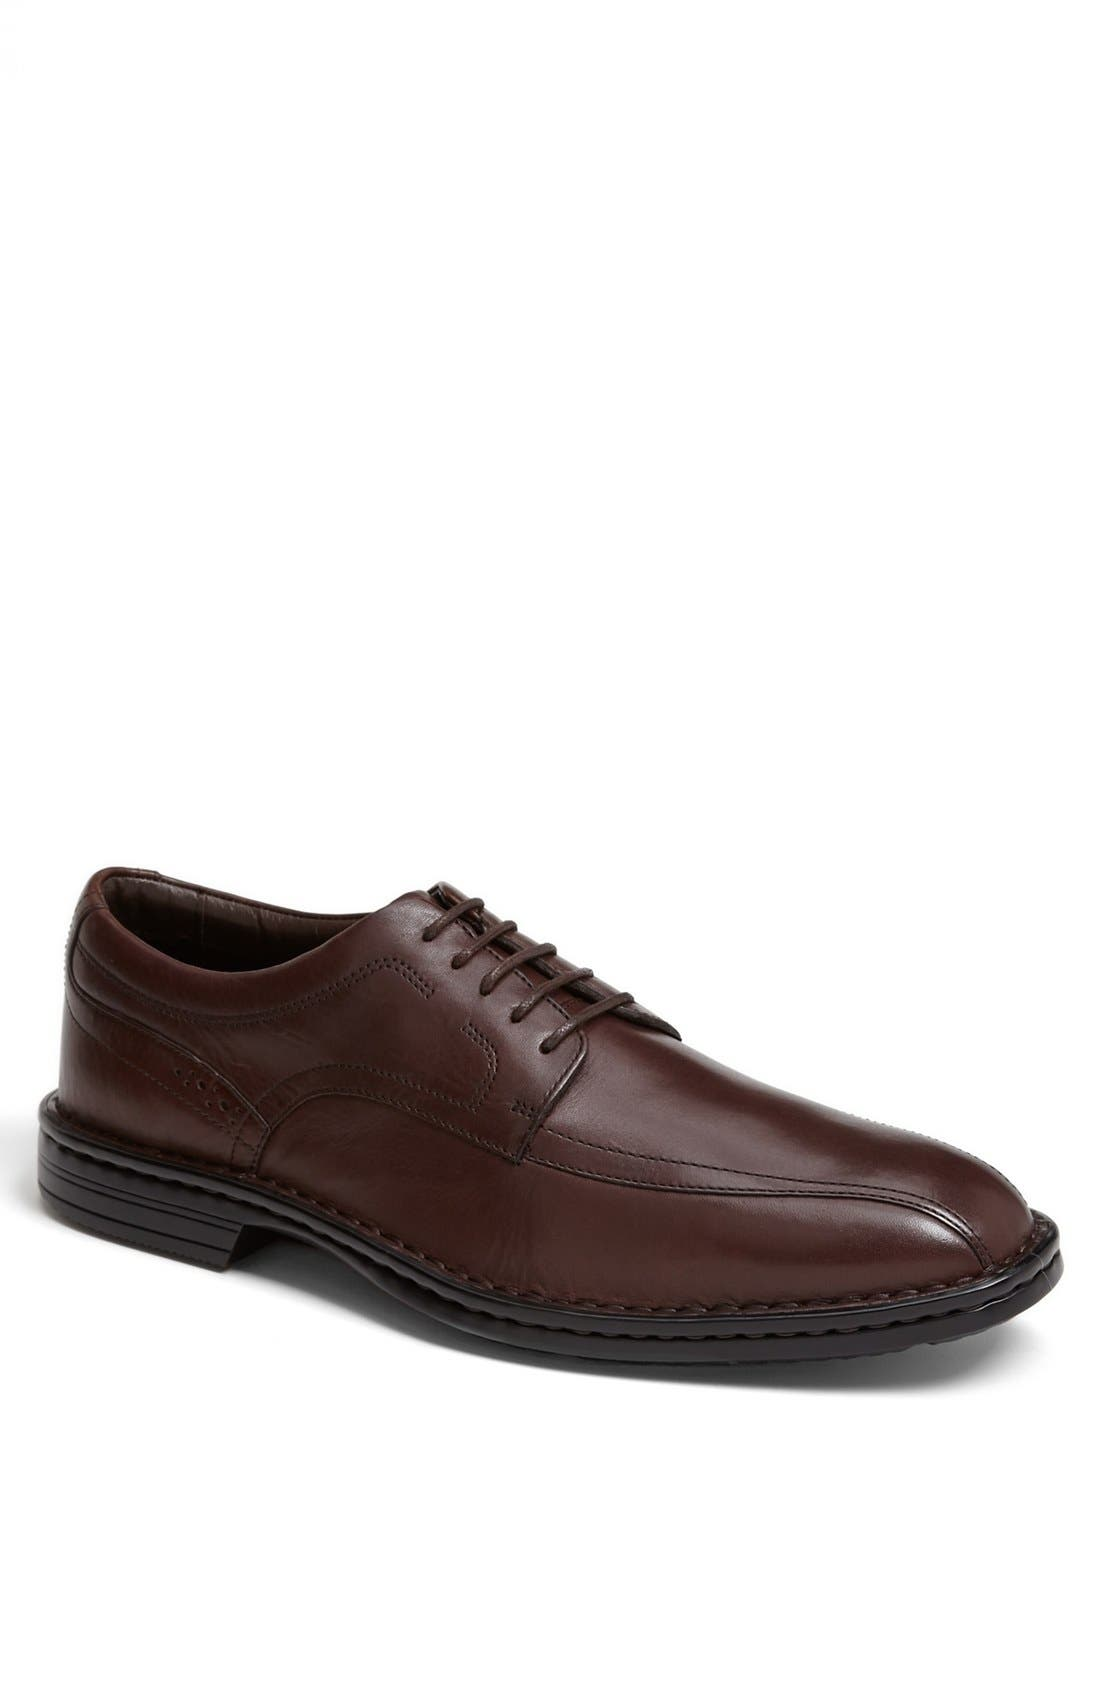 Alternate Image 1 Selected - Rockport 'RocSports Lite' Bicycle Toe Derby